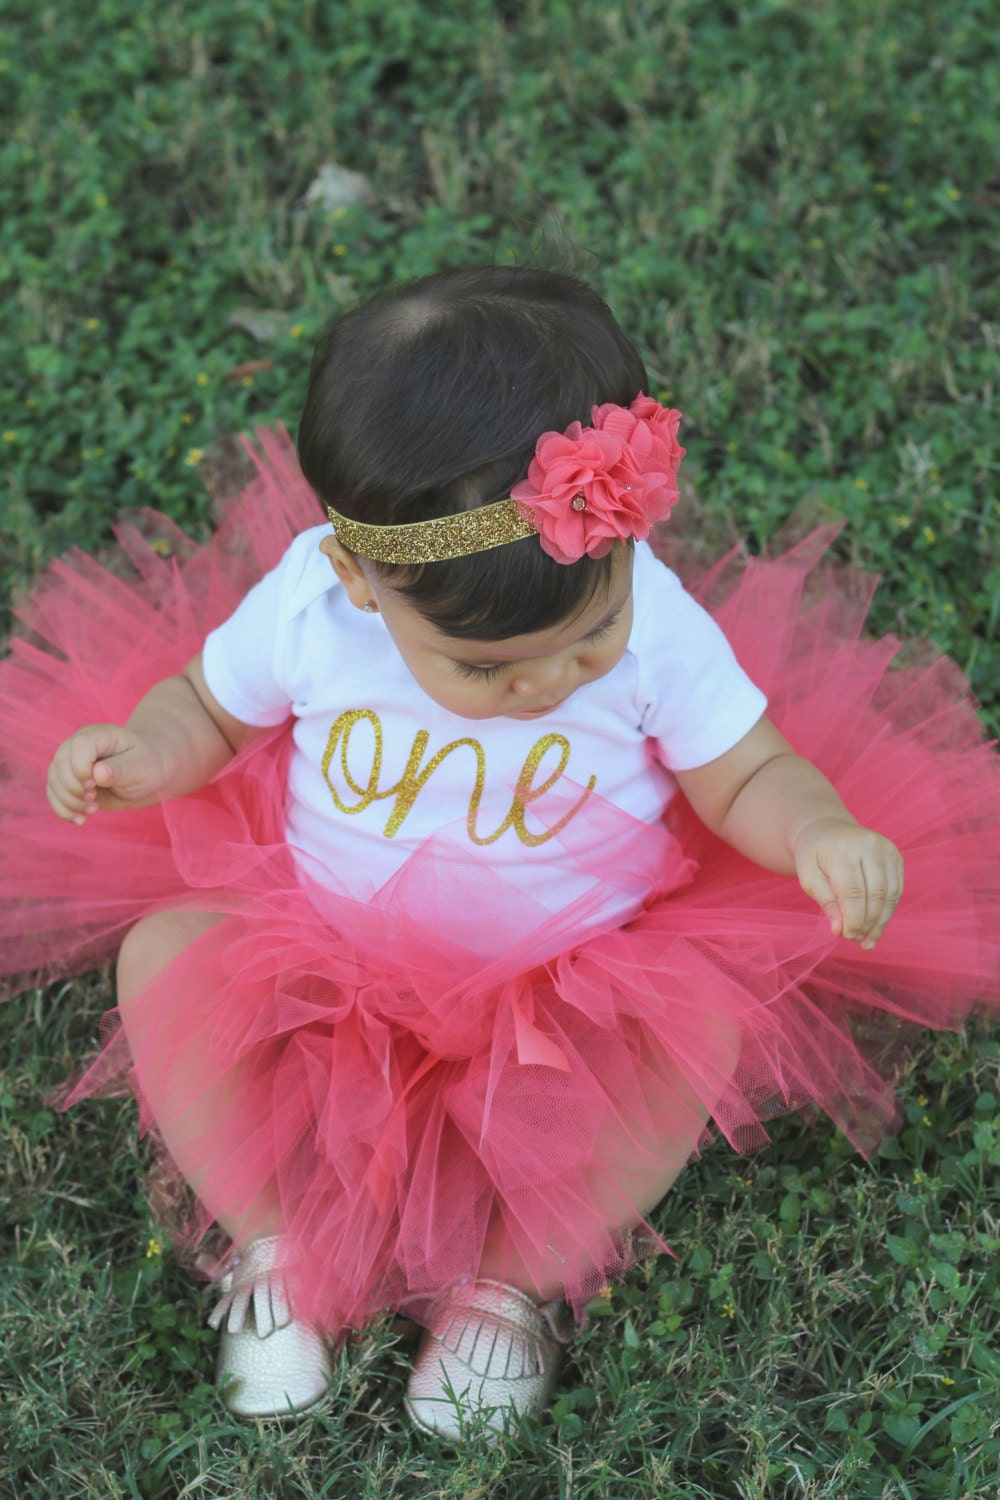 Discussion on this topic: 17 Cute 1st Birthday Outfits for Baby , 17-cute-1st-birthday-outfits-for-baby/